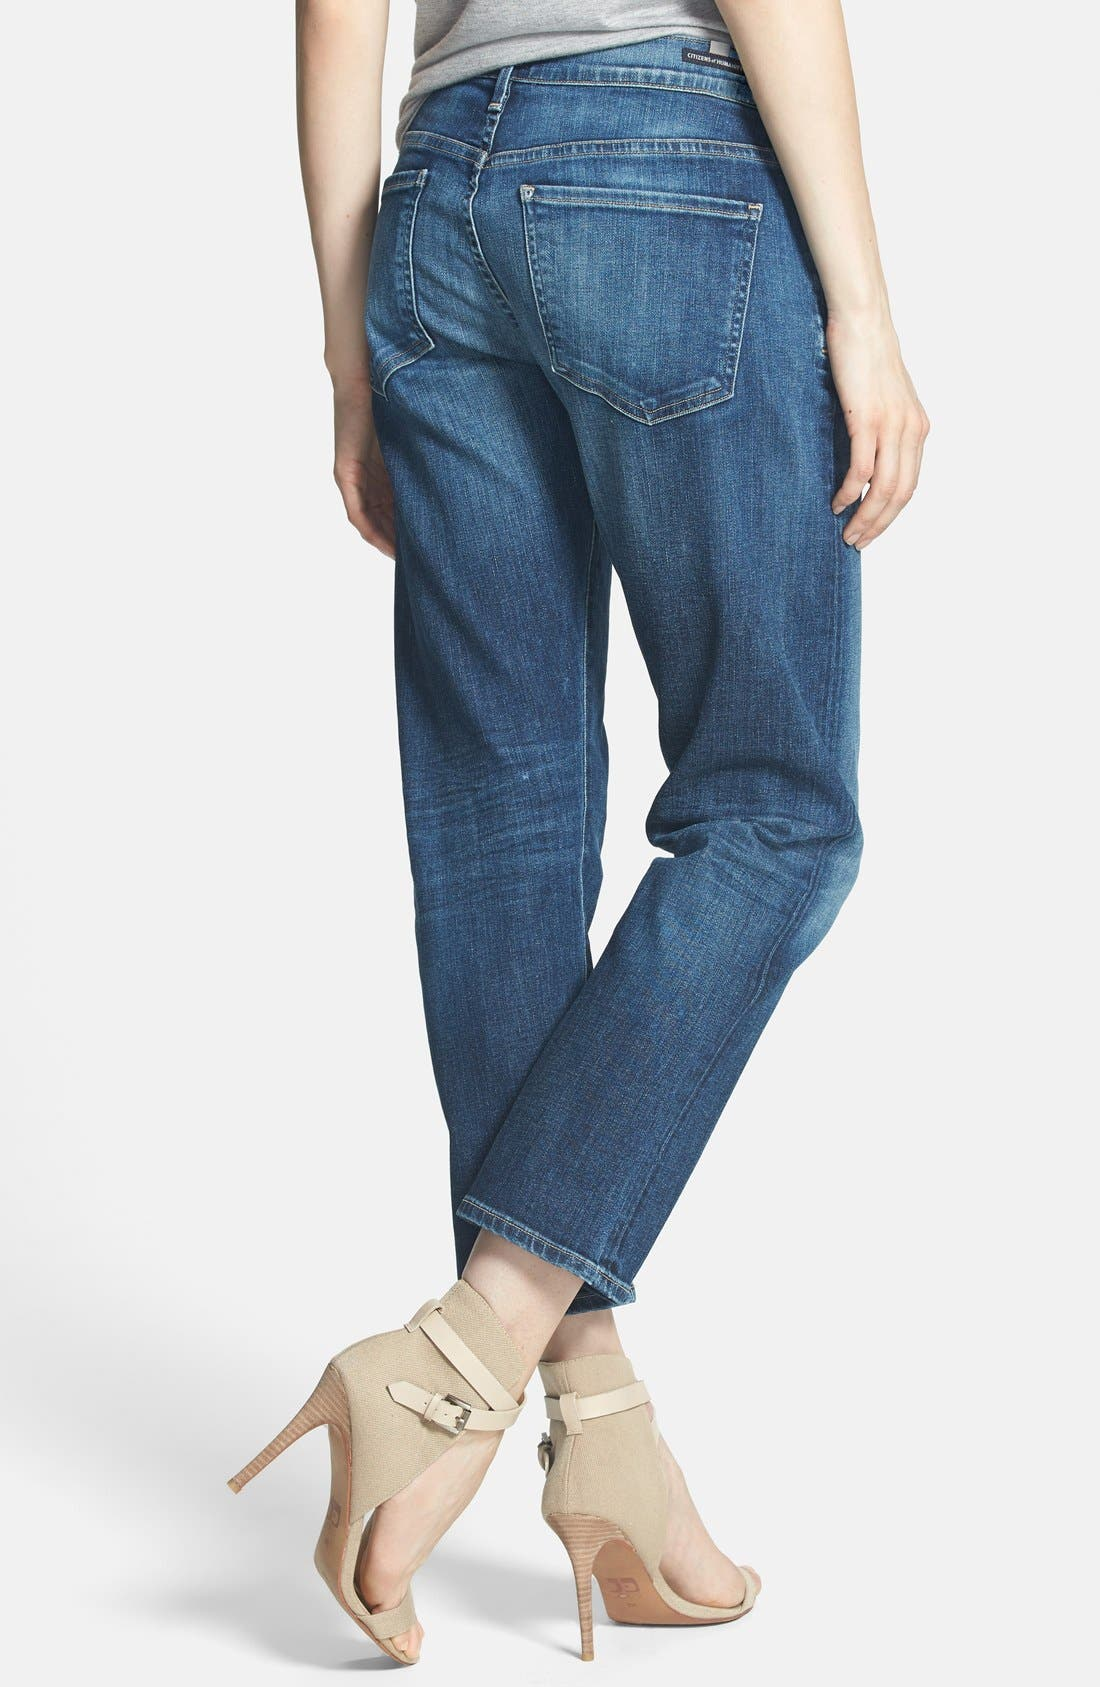 Emerson Slim Boyfriend Jeans,                             Alternate thumbnail 4, color,                             BLUE RIDGE